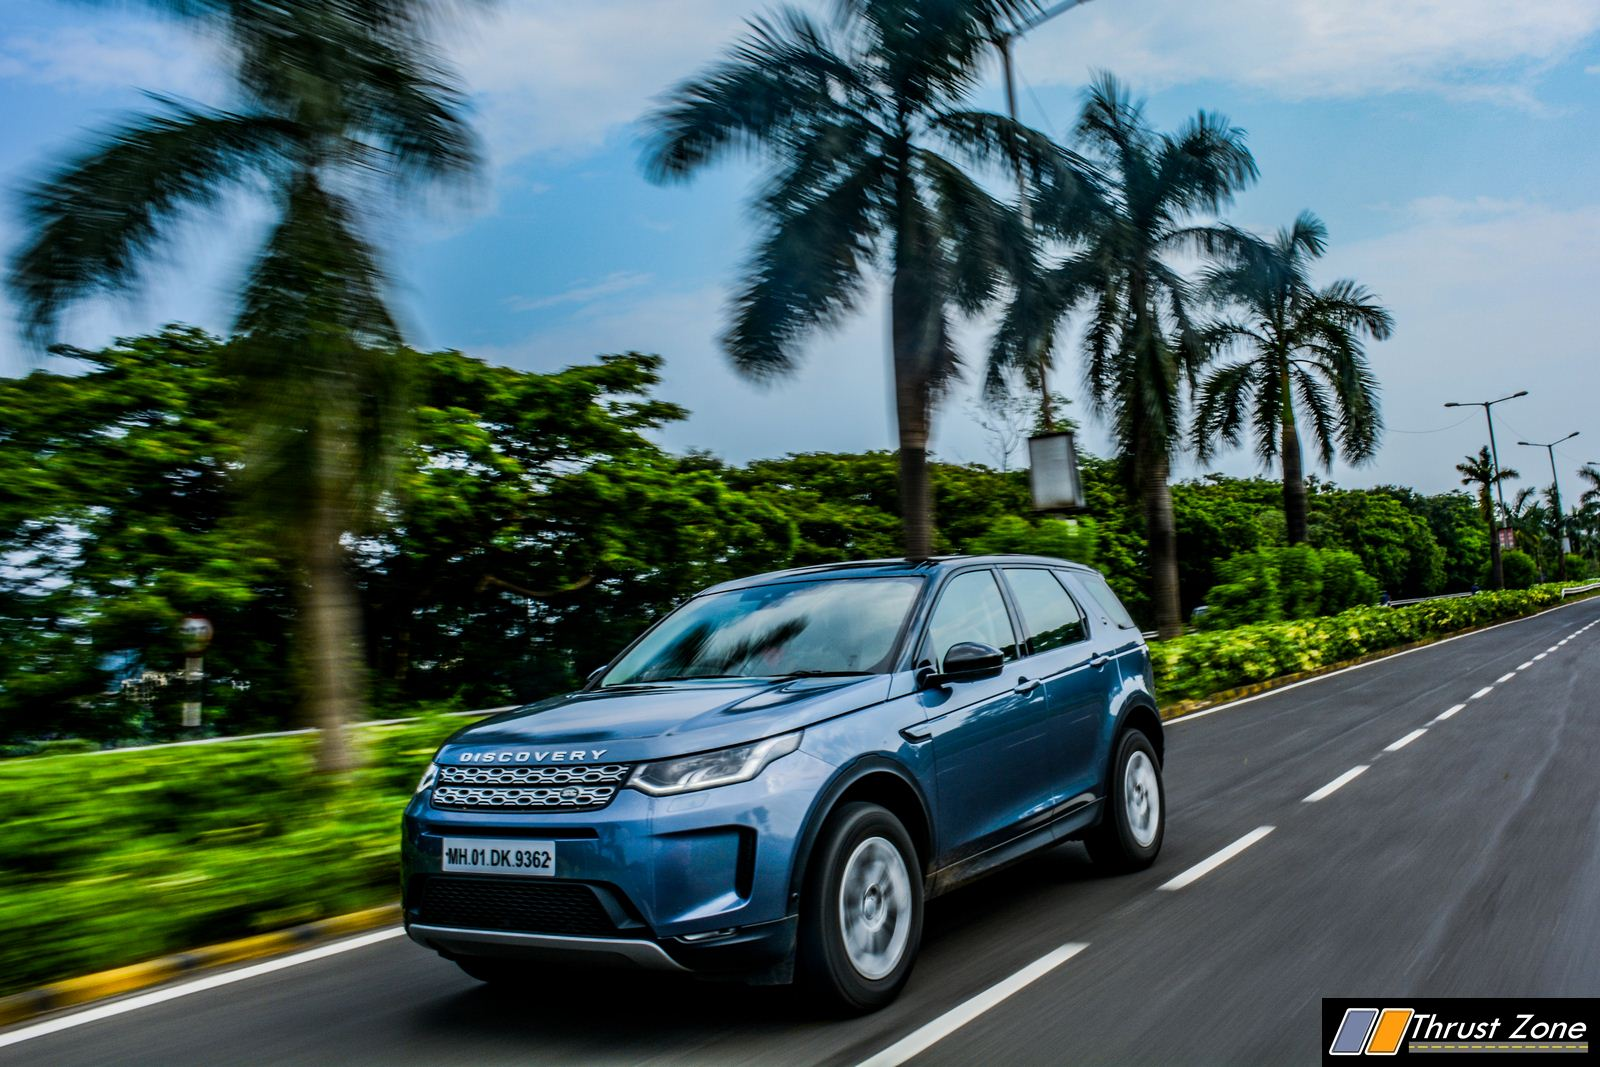 2020-Land-Rover-Discovery-Diesel-India-Review-22